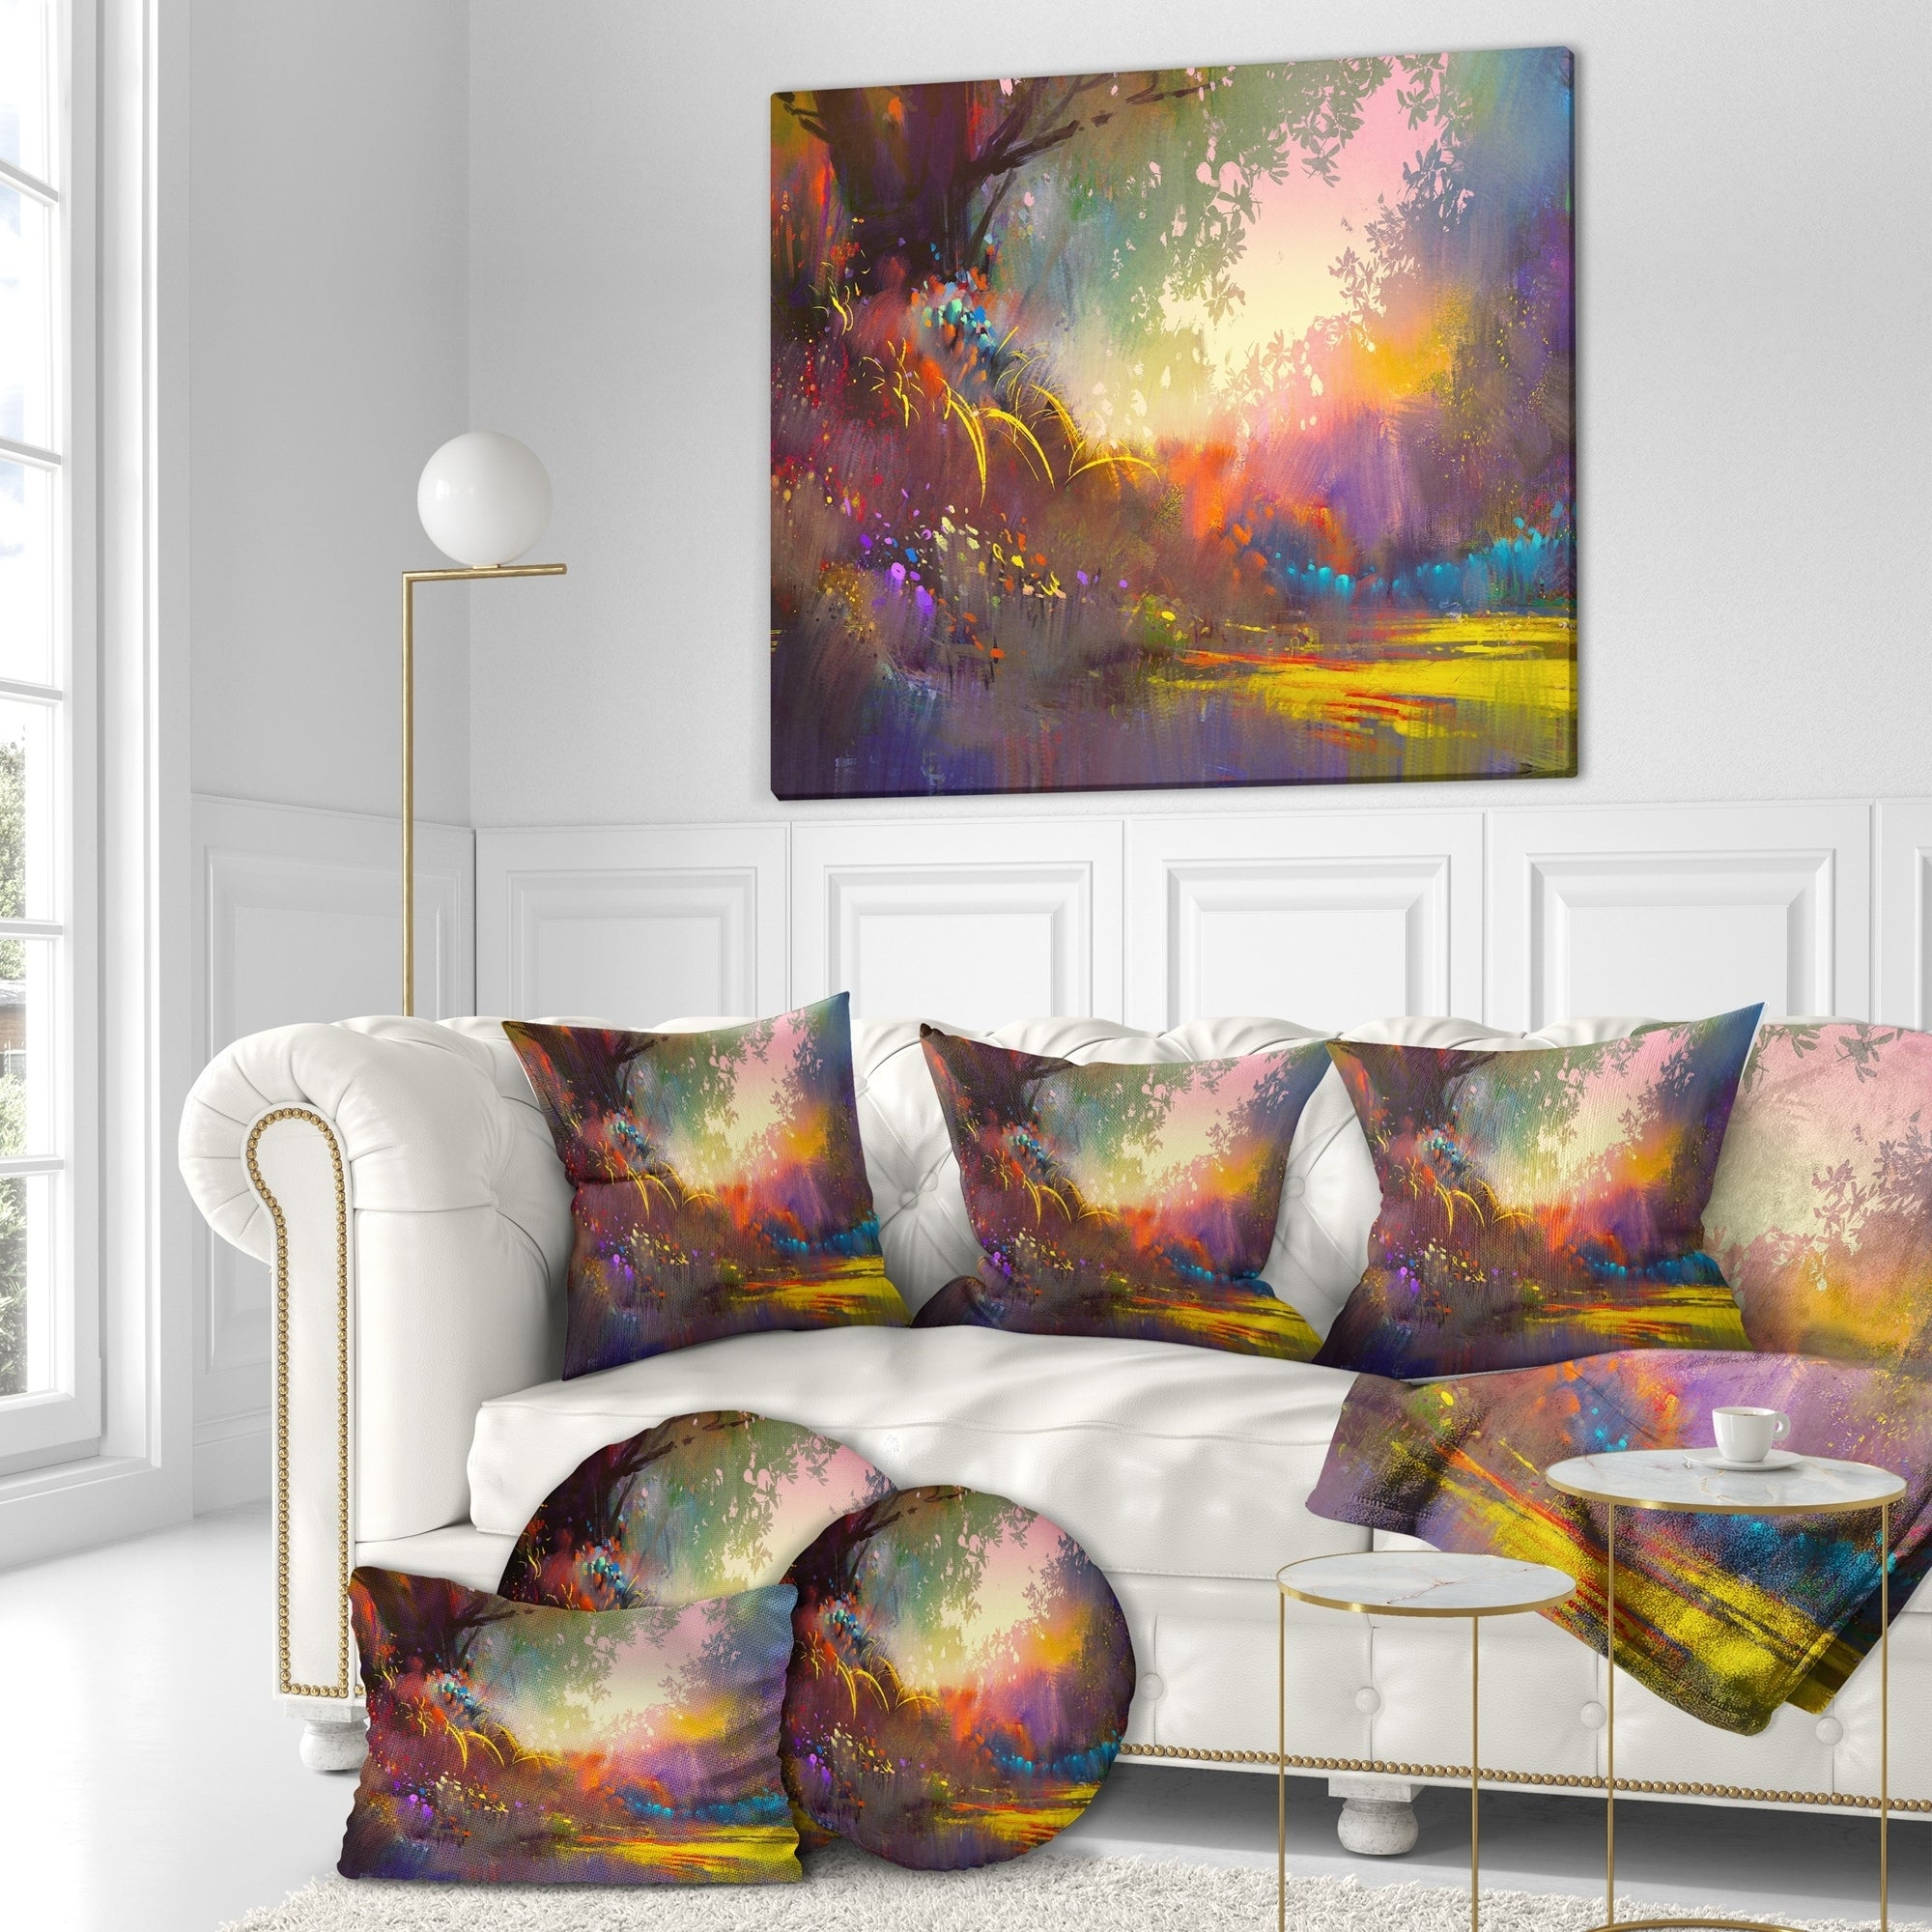 Designart Colorful Landscape Landscapes Print On Wrapped Canvas Brown Overstock 21277436